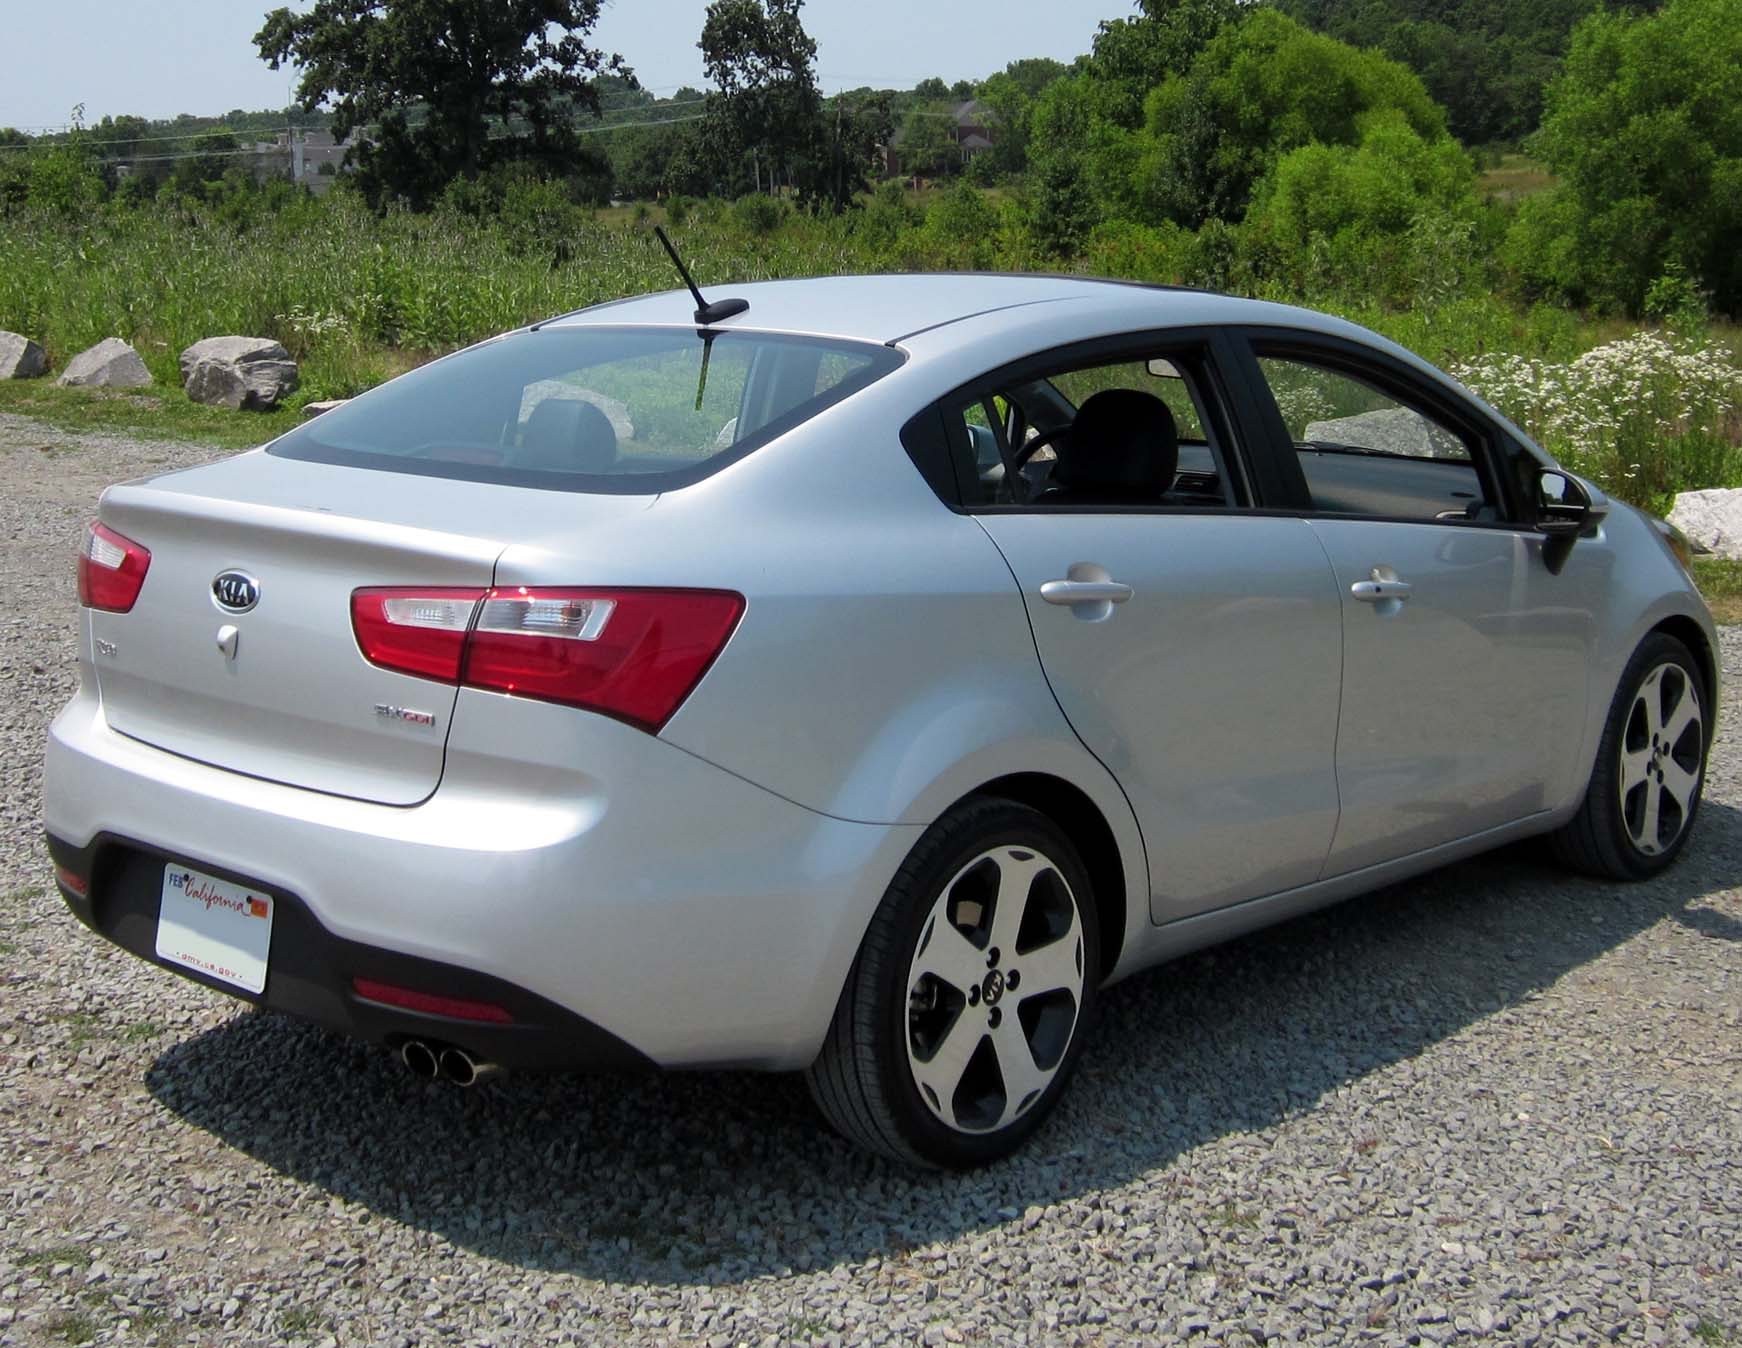 File:2012 Kia Rio SX sedan -- 06-28-2012 rear.JPG ...